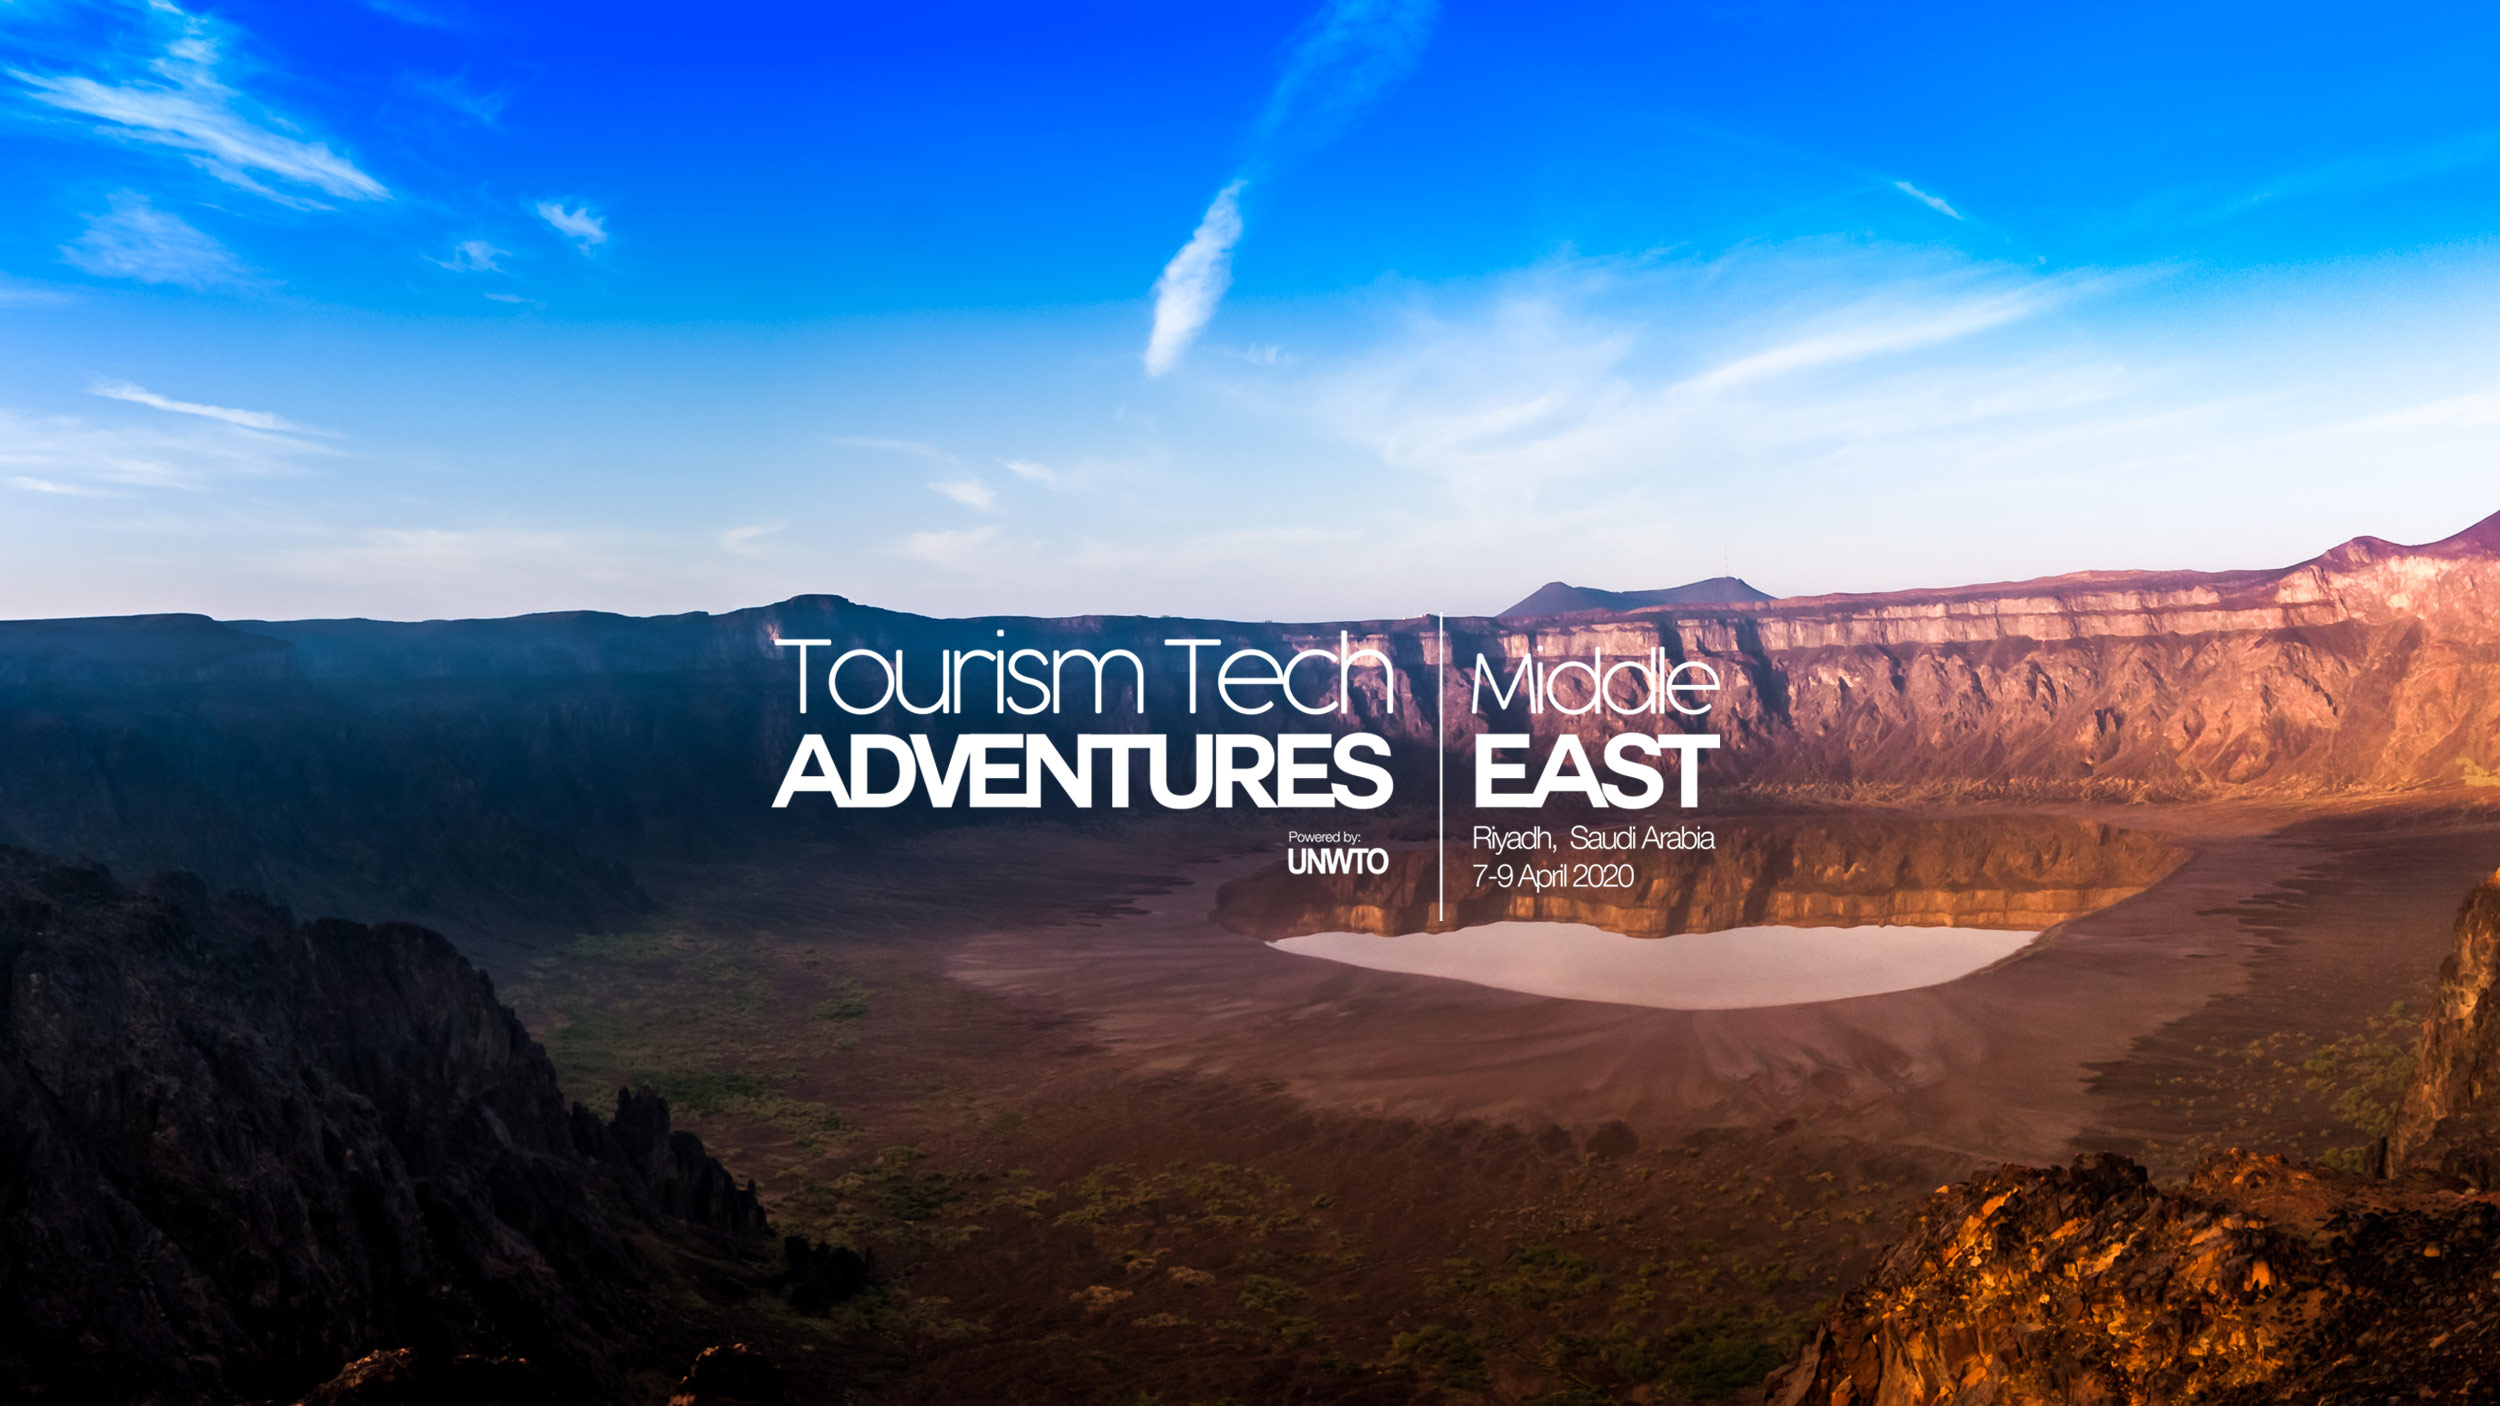 UNWTO Tourism Tech Adventure Forum: Middle East